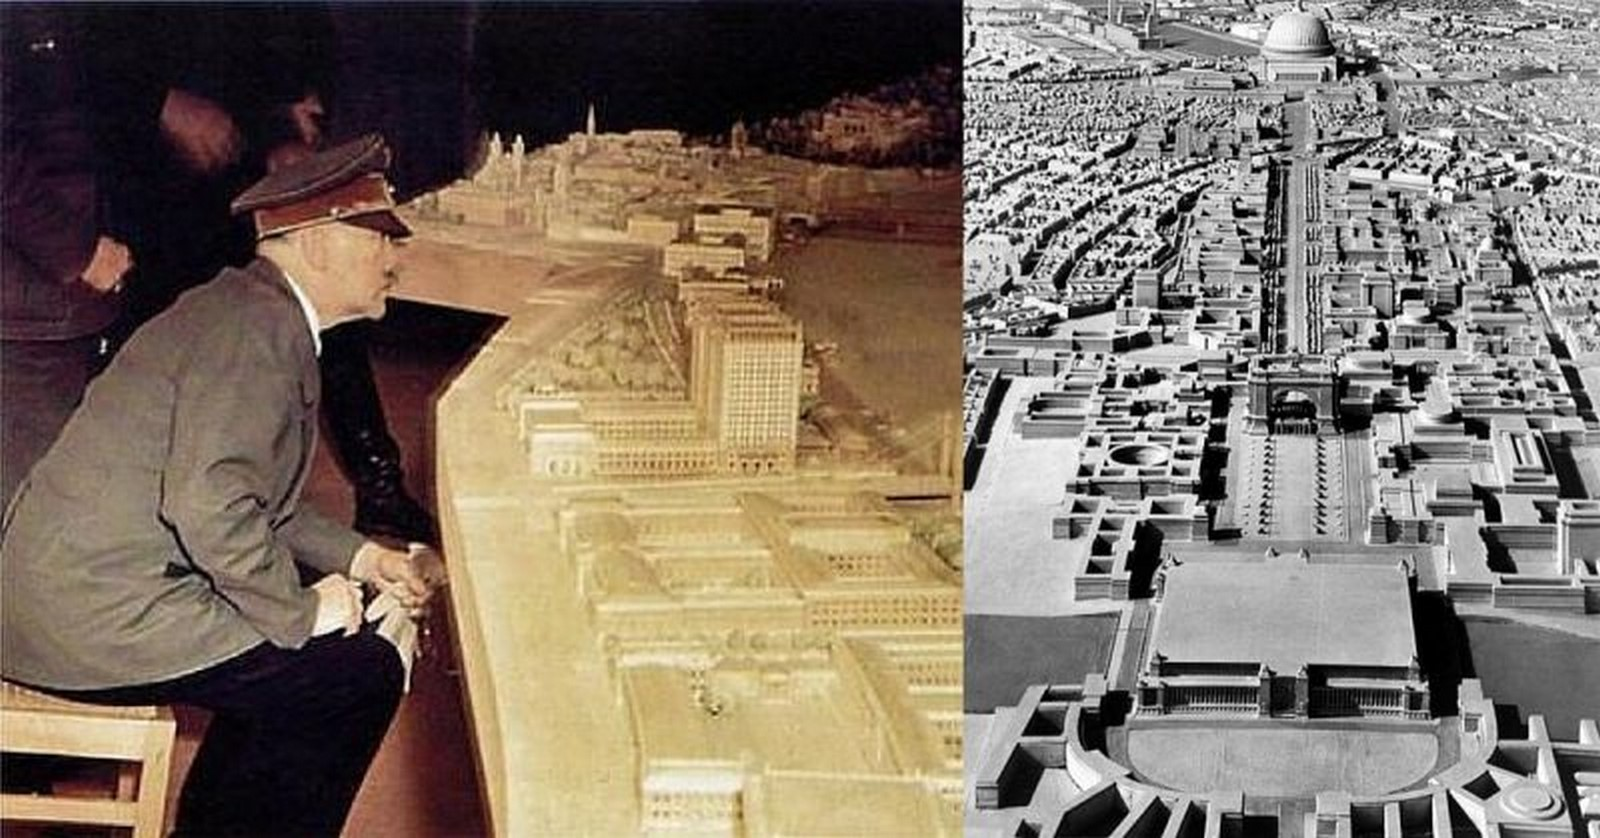 Germania- Hitler's architectural vision for a capital of the world - Sheet3